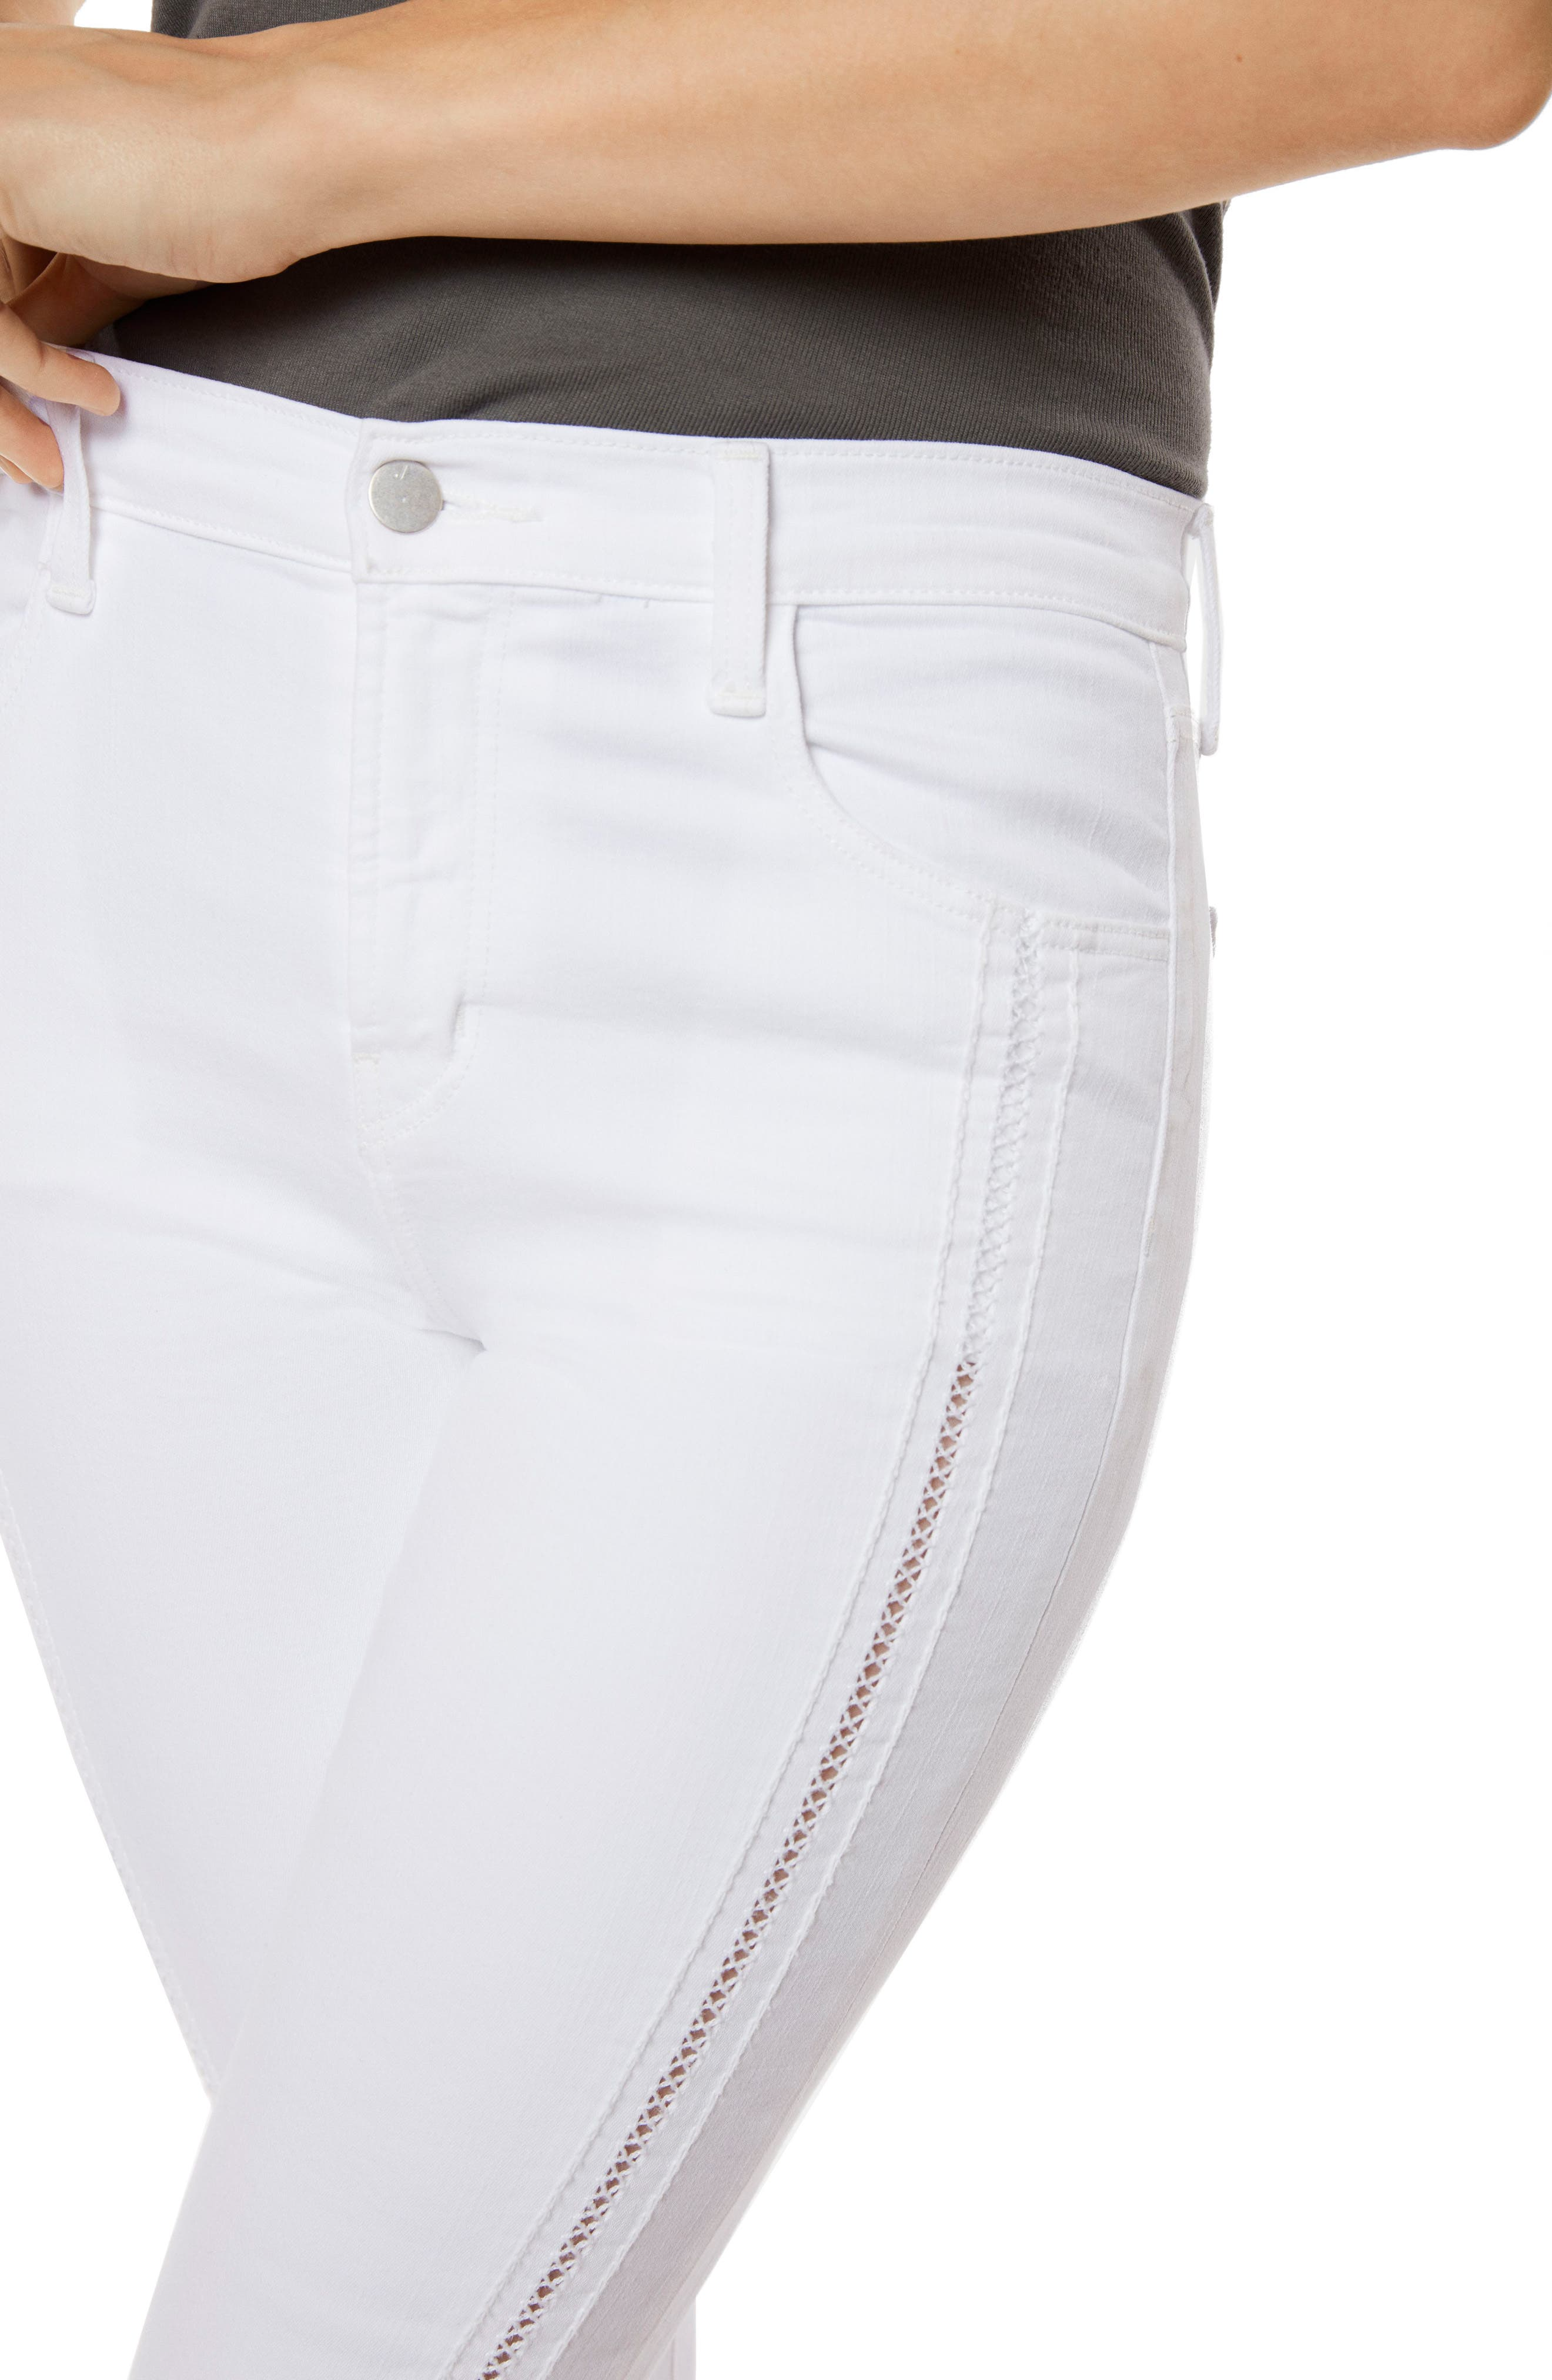 Alana High Waist Crop Skinny Jeans,                             Alternate thumbnail 3, color,                             White Ladder Lace